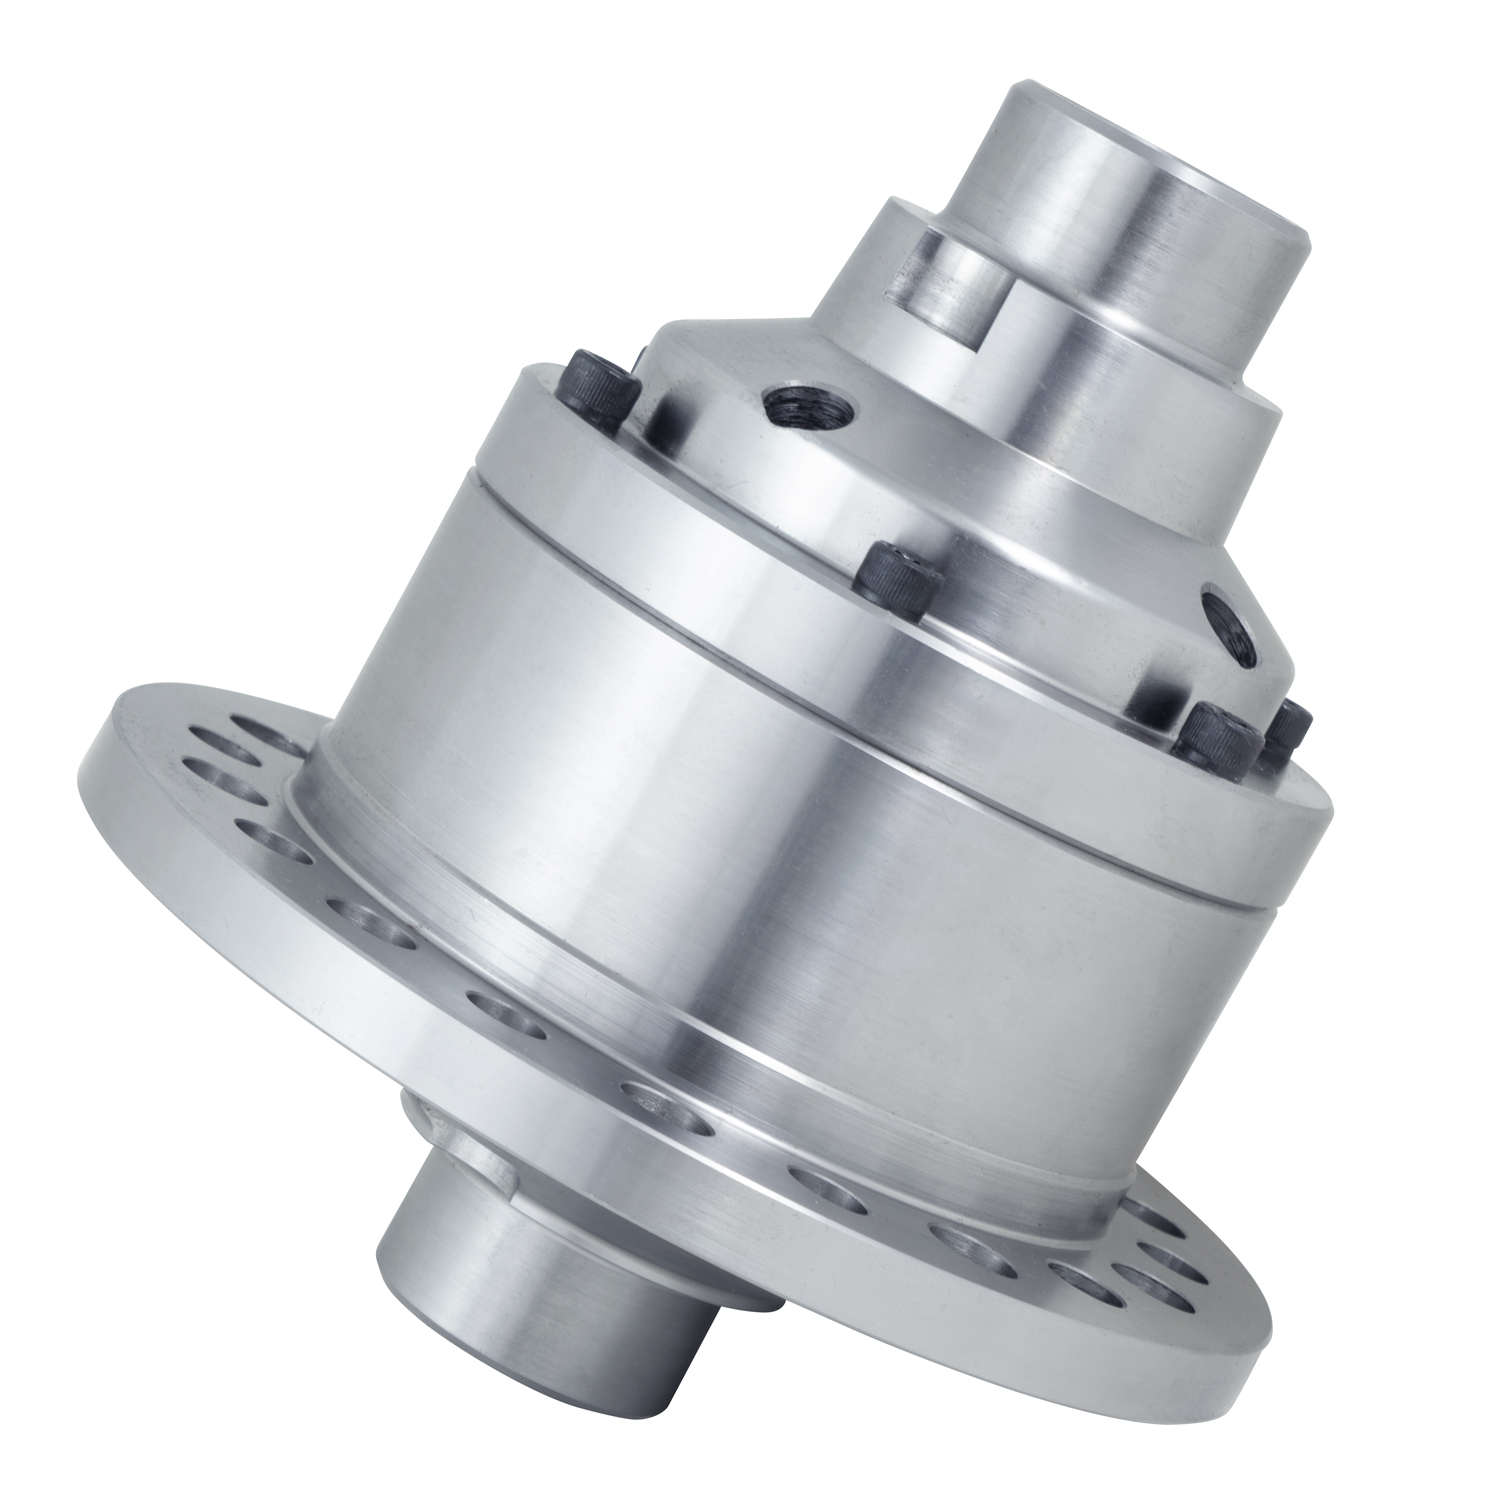 YGLD30-4-27 - Yukon Grizzly locker for Dana 30, 27 spline, 3.73 & up.